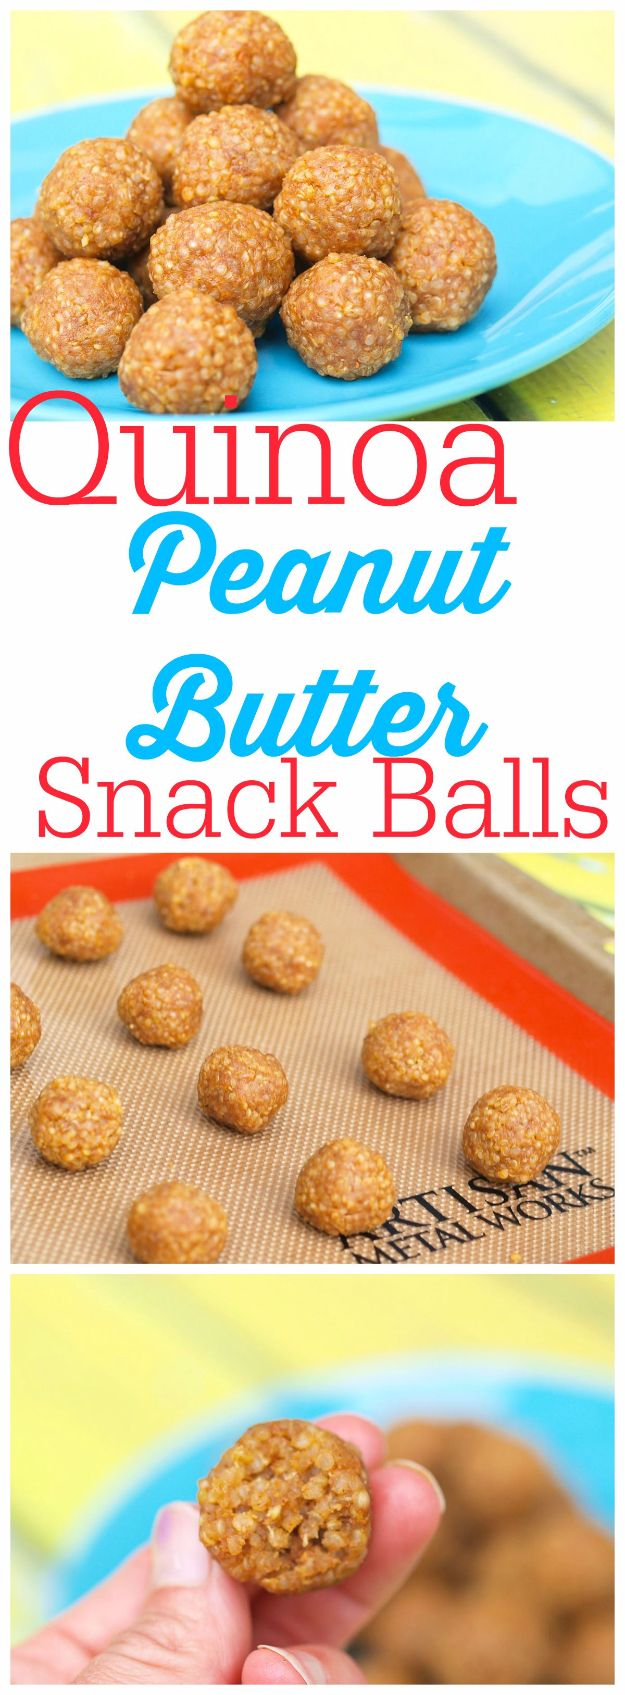 Last Minute Dessert Recipes and Ideas - Quinoa Peanut Butter Snack Balls - Healthy and Easy Ideas for No Bake Recipe Foods, Chocolate, Peanut Butter. Best Simple Ideas for Summer, For A Crowd and for Parties http://diyjoy.com/last-minute-dessert-ideas